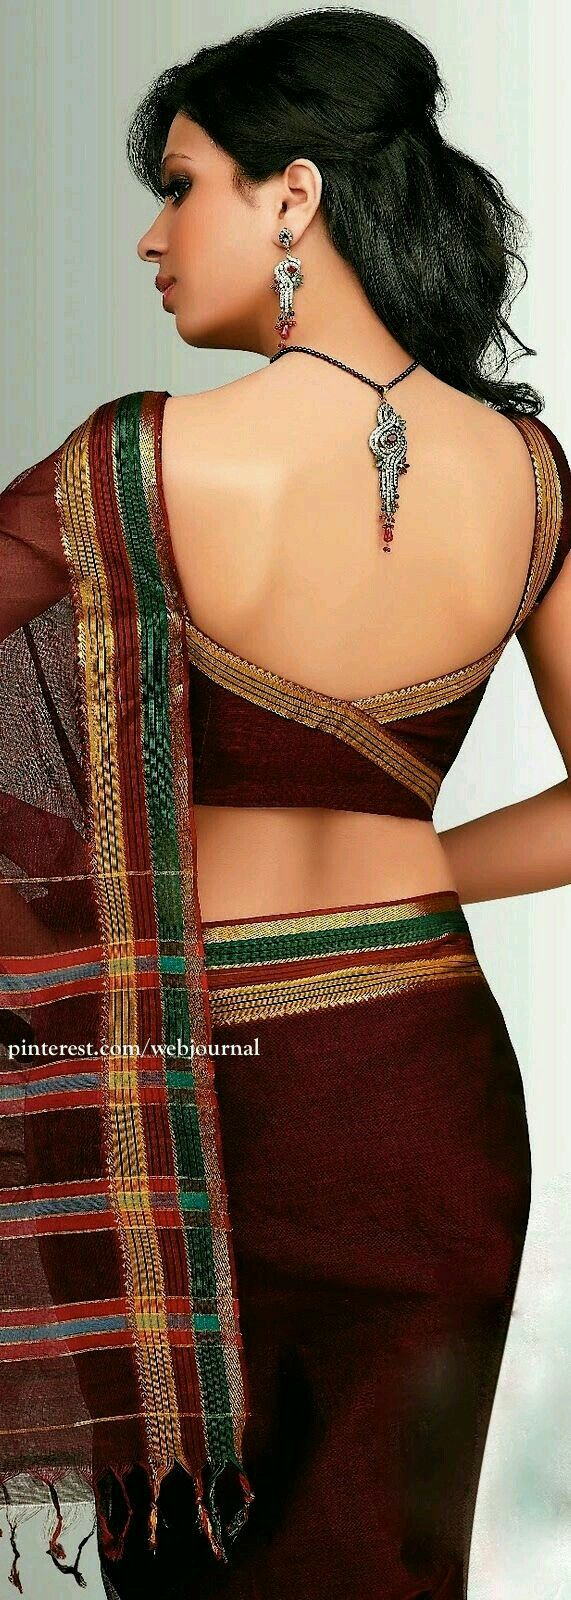 best blouse designs images on pinterest blouses indian bangles